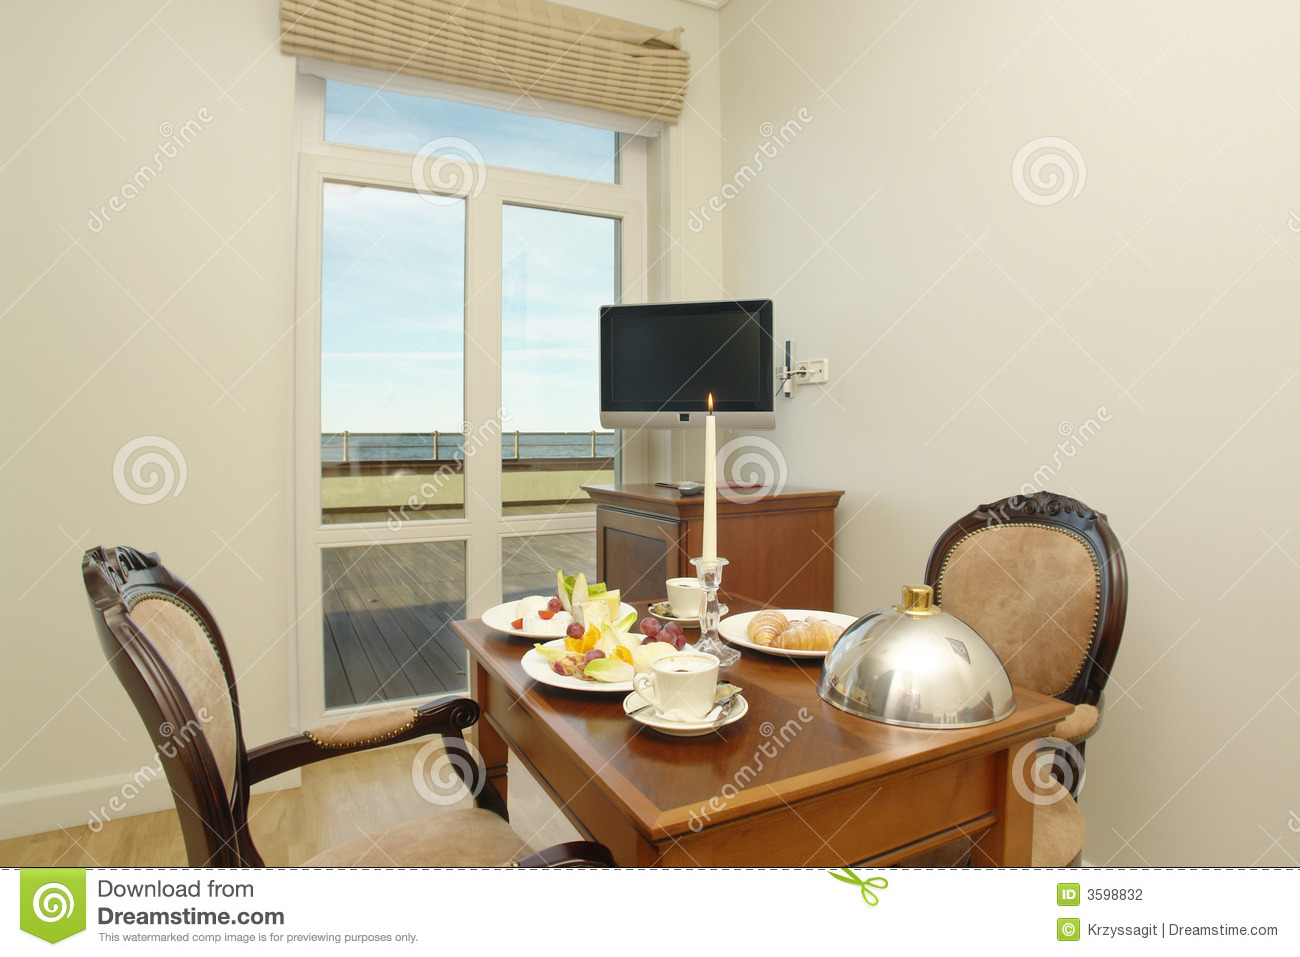 Hotel Dining Room With Table Set Cutlery And A Two Person Meal